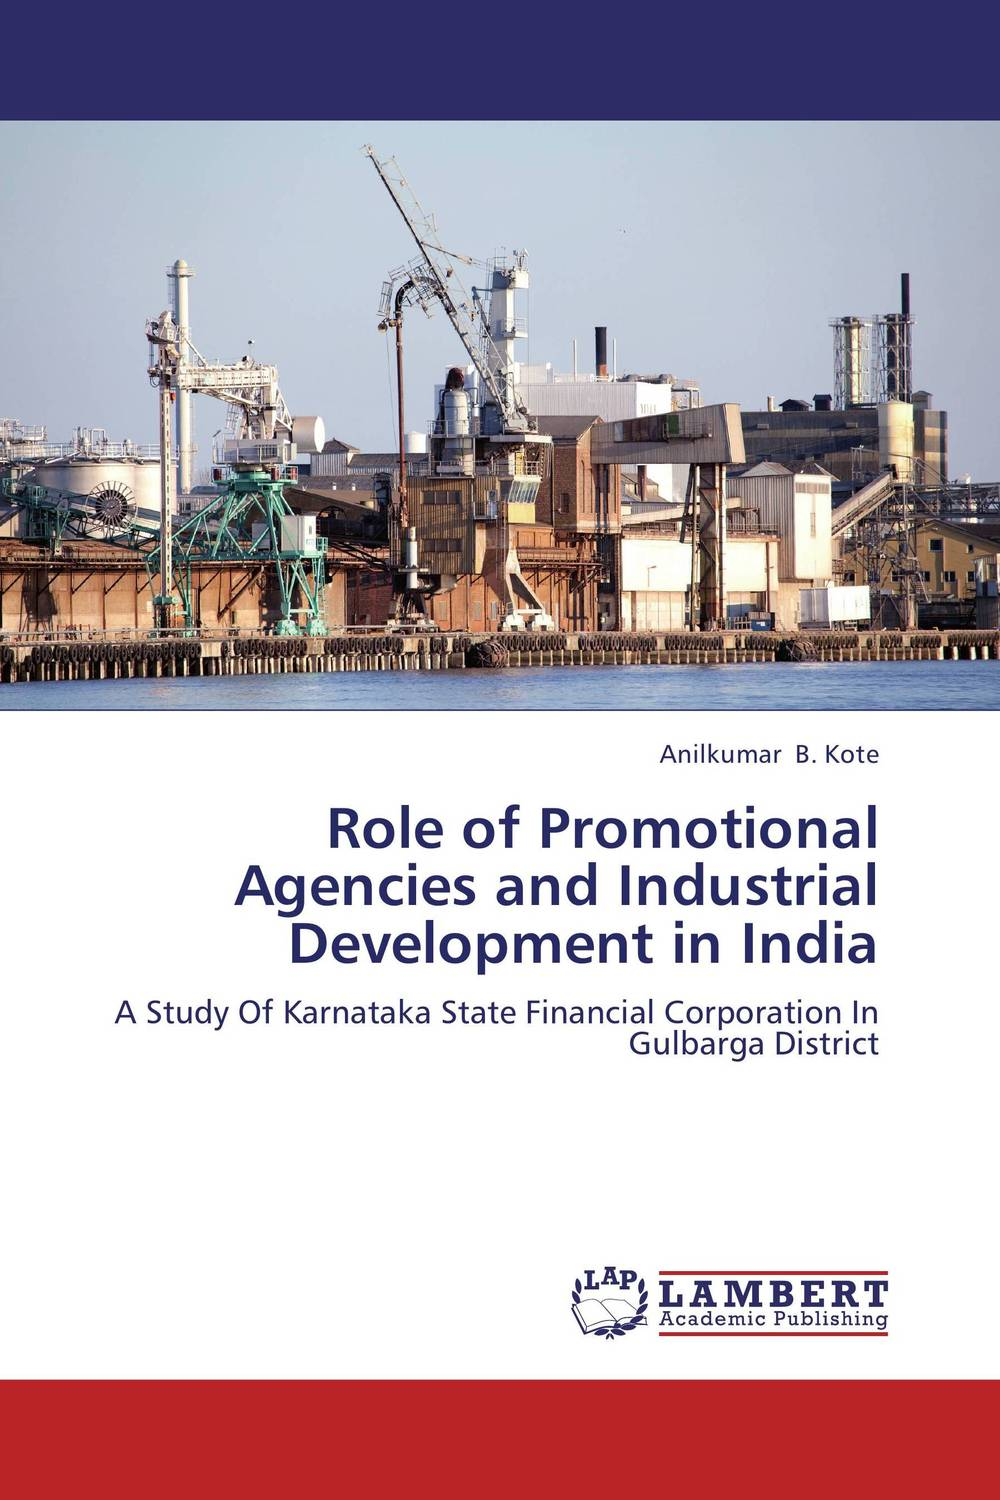 Role of Promotional Agencies and Industrial Development in India father's role in enhancing children's development